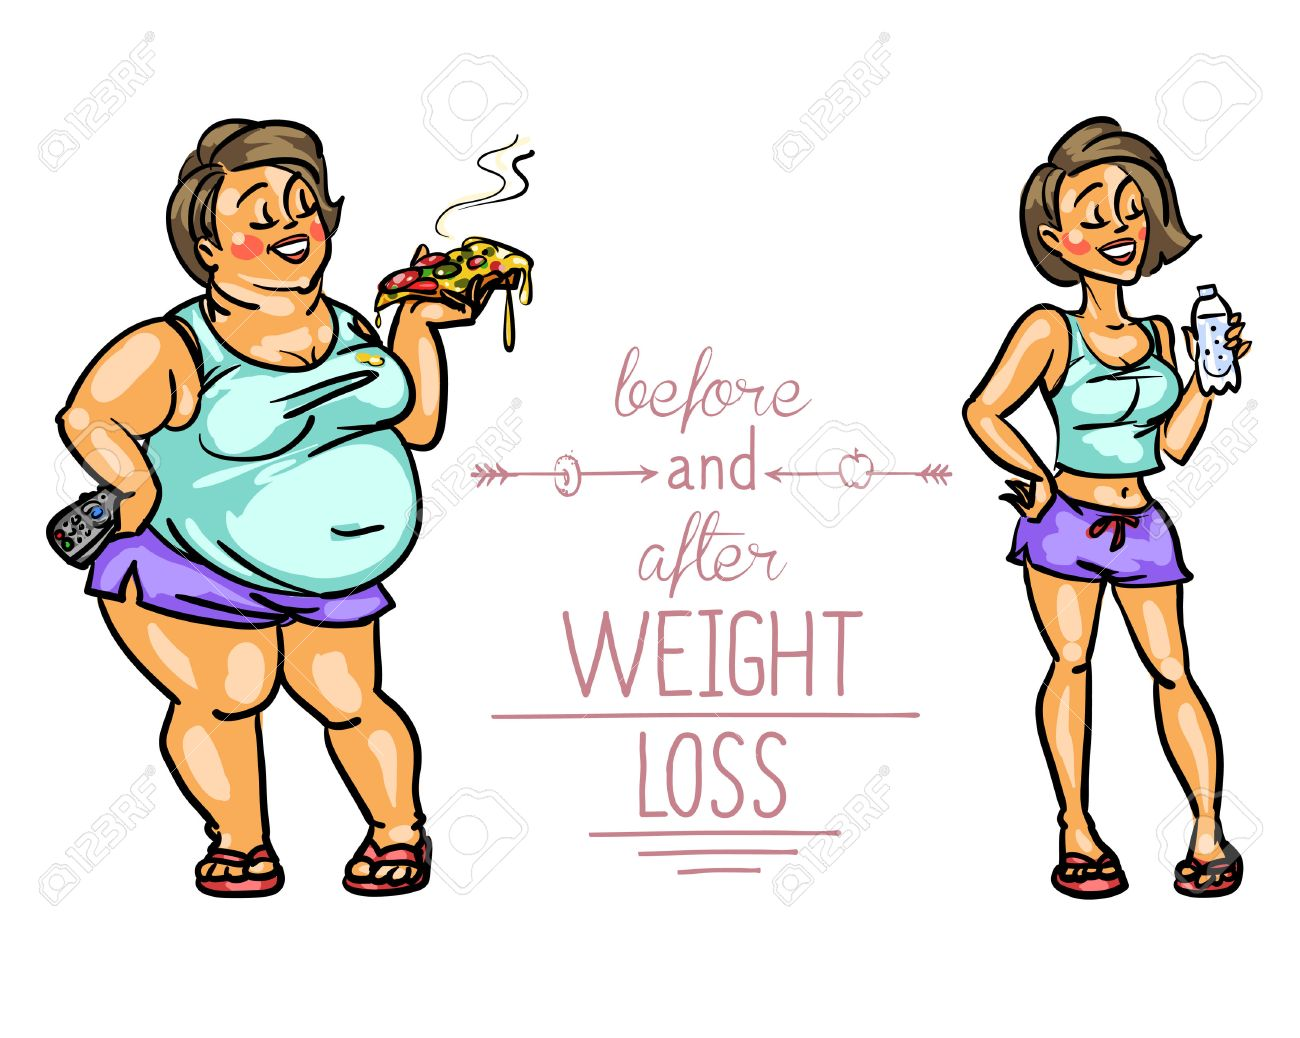 Weight Loss Cartoon